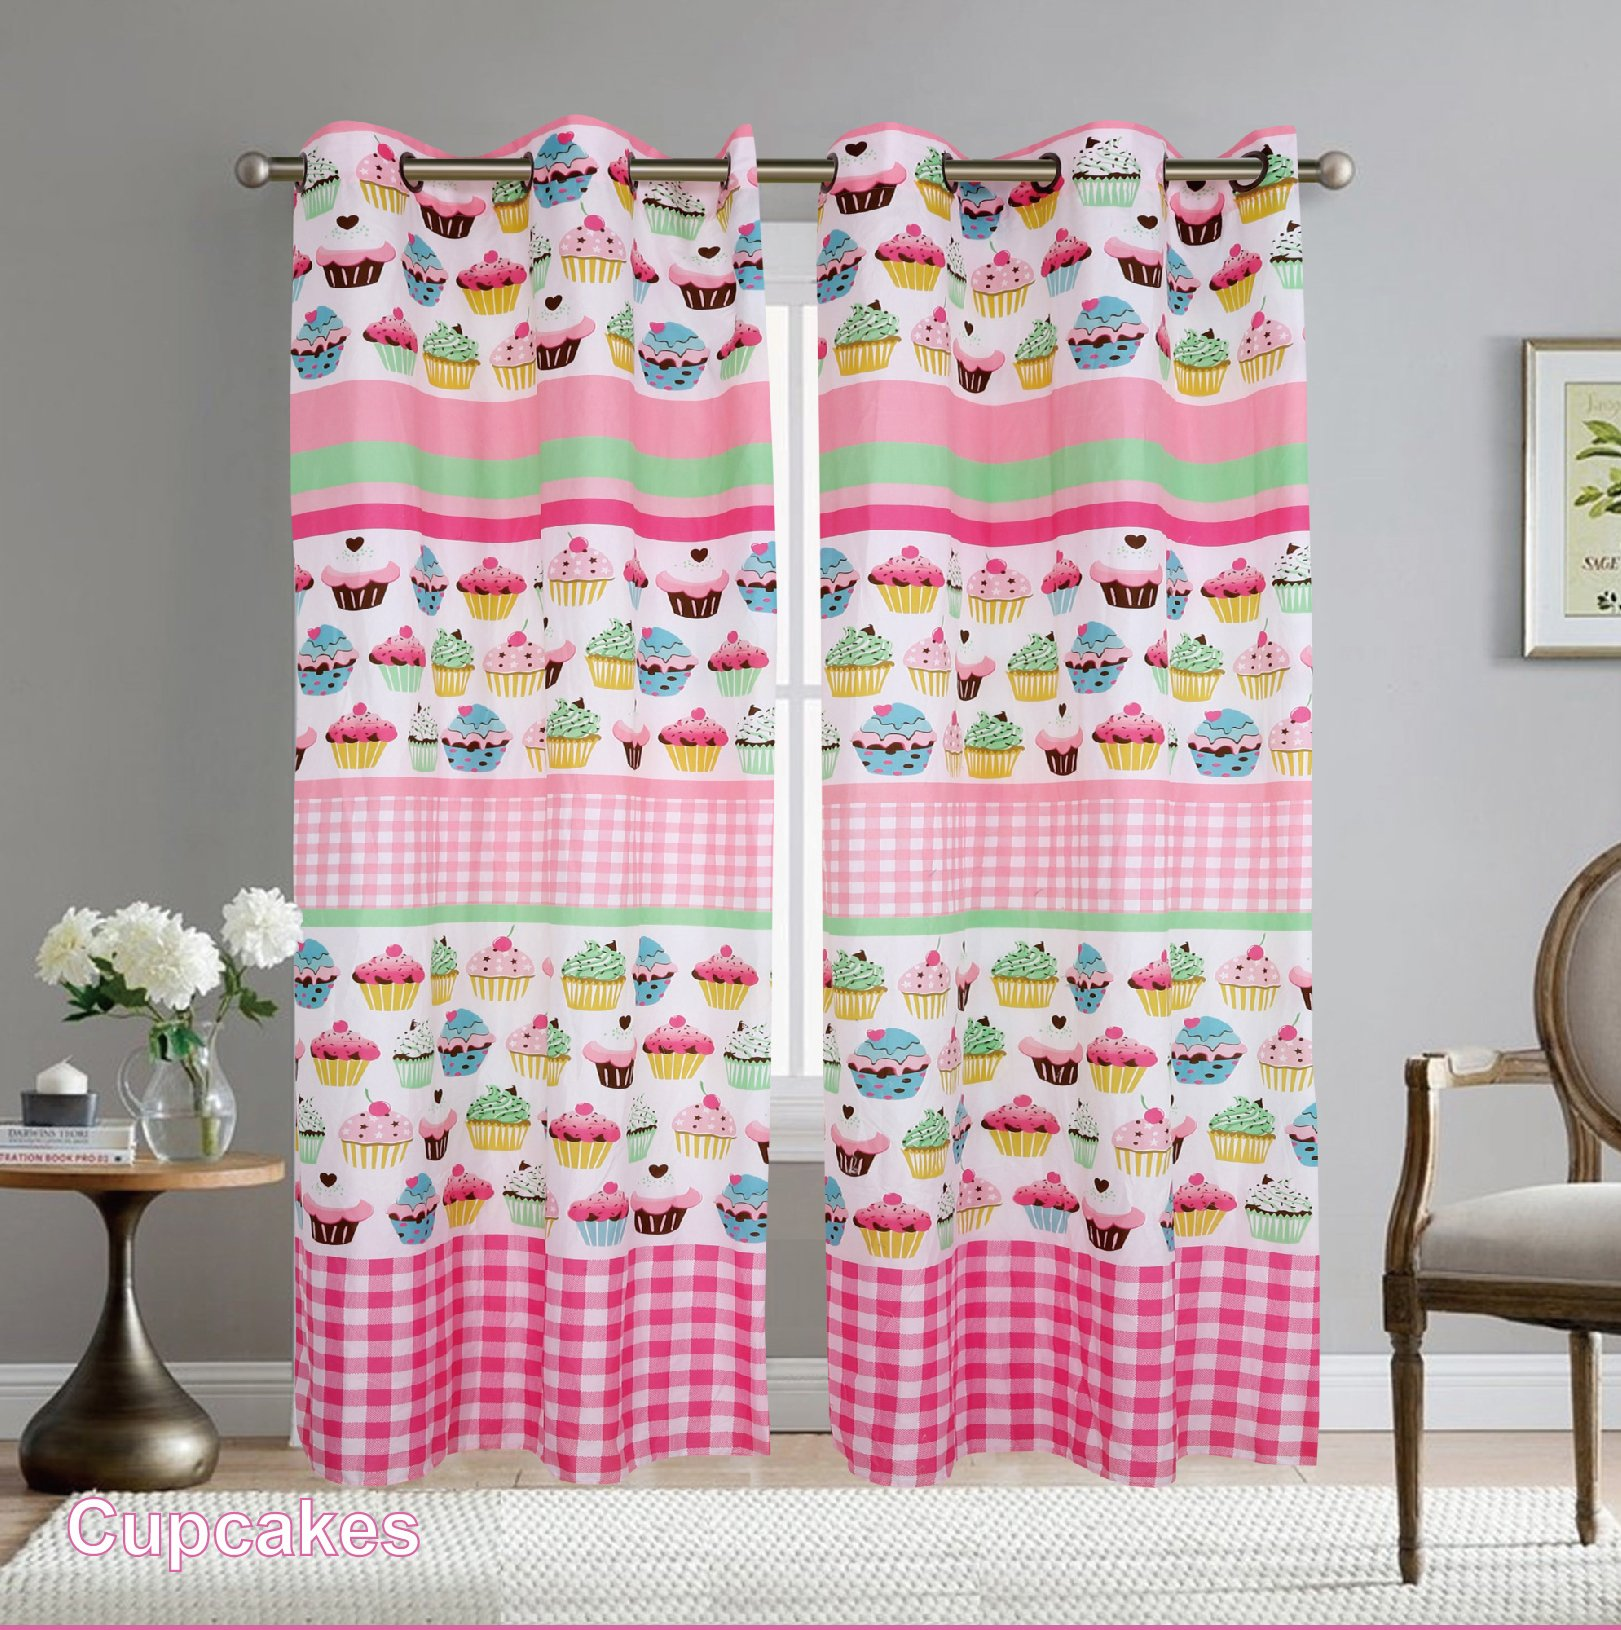 Elegant Home Cupcakes Striped Multicolors Pink White Green Blue Girls/Kids Room Window Curtain Treatment Drapes 2 Piece Set with Grommets # Cupcake